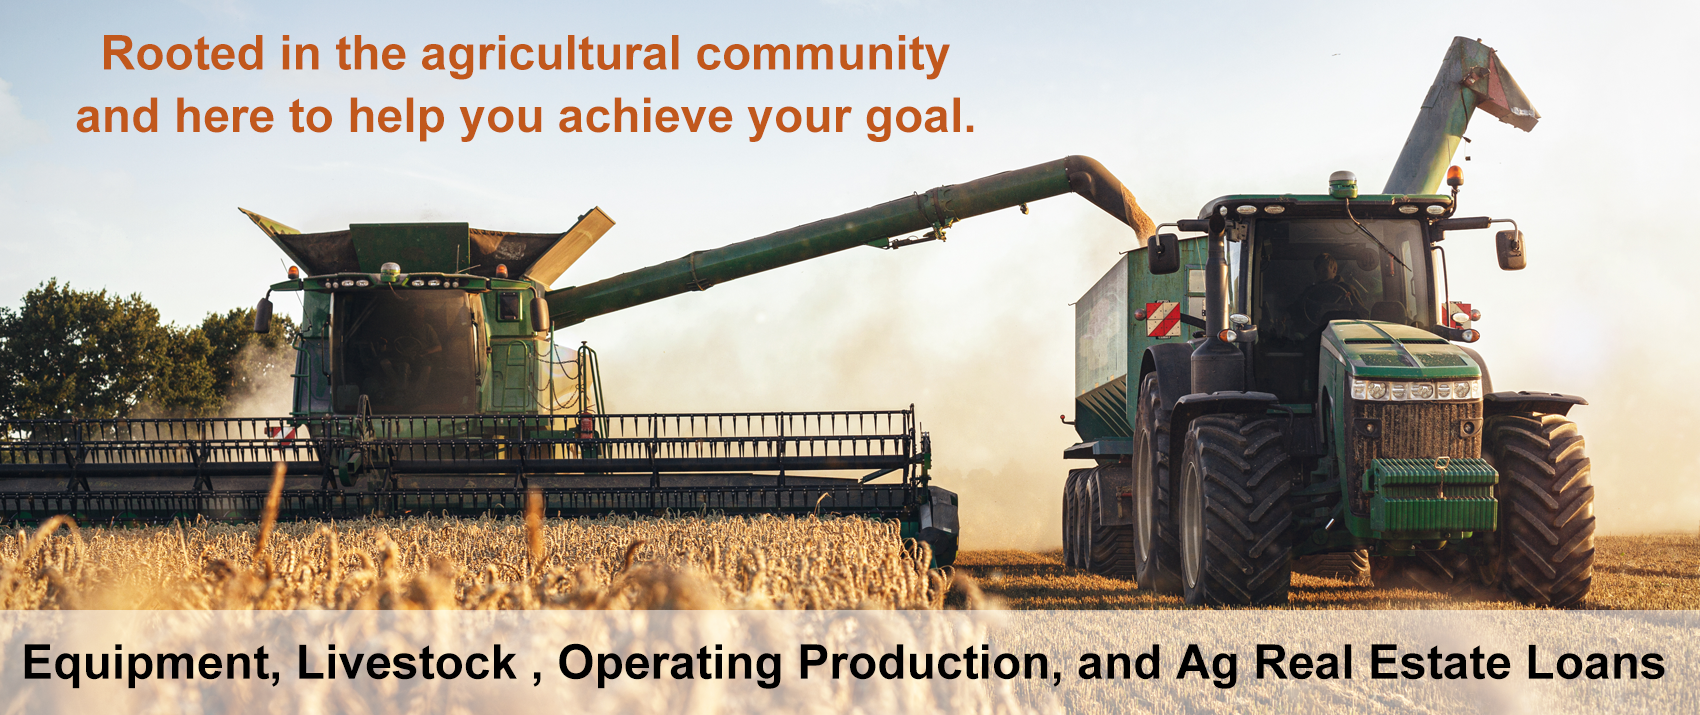 Equipment, Livestock , Operating Production, and Ag Real Estate Loans